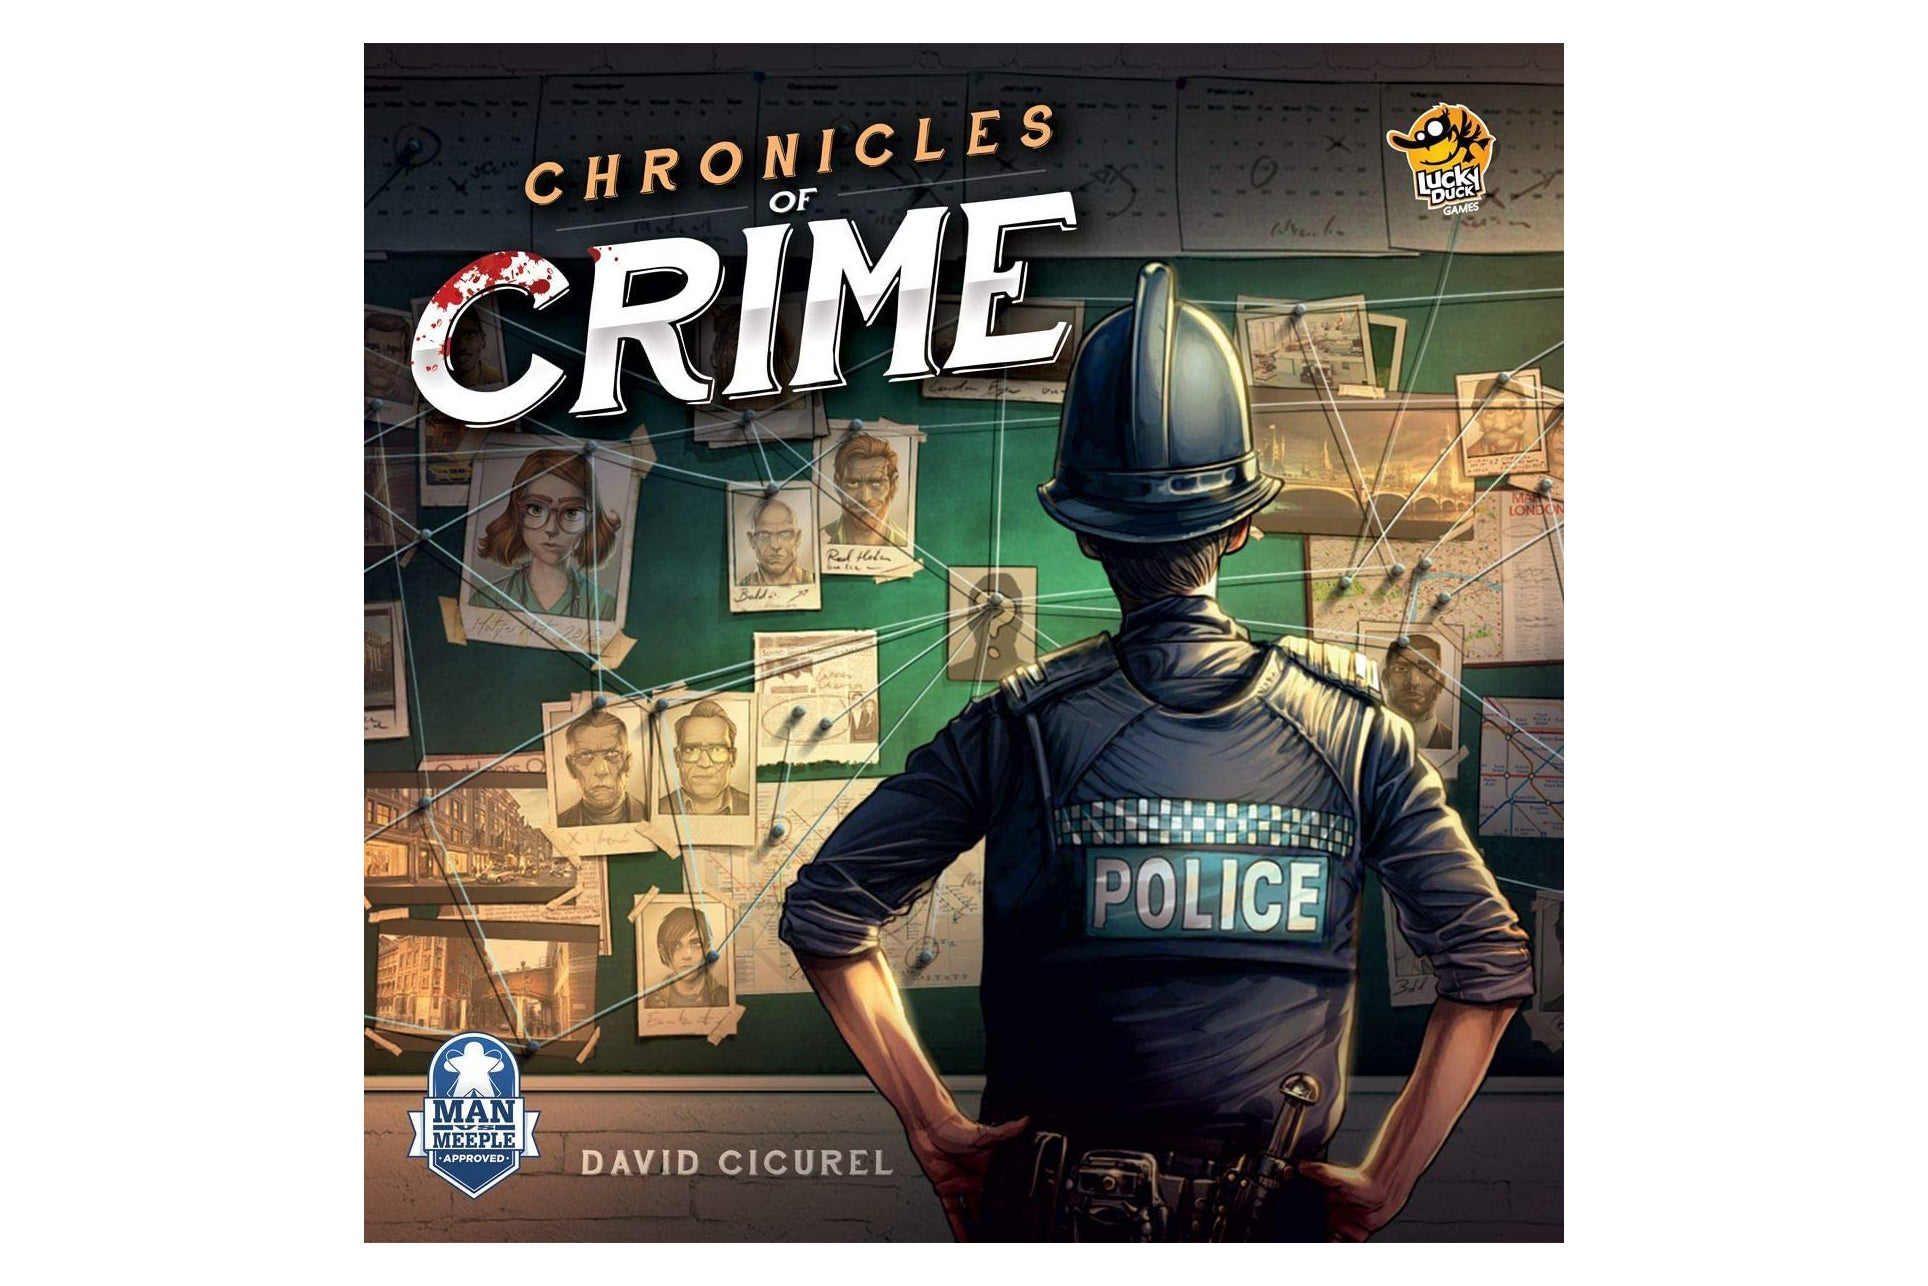 The Chronicles of Crime board game box.